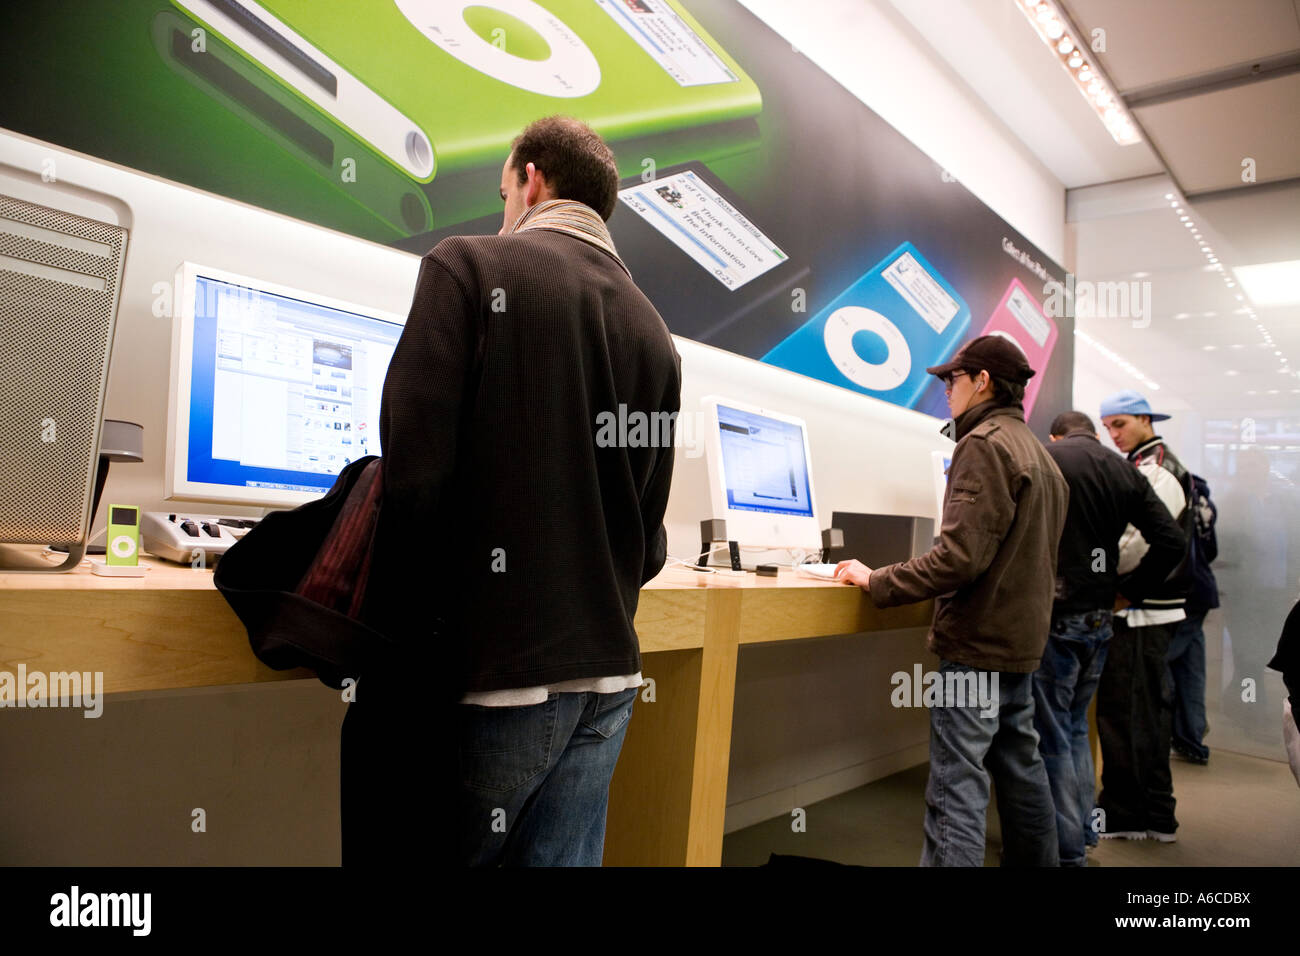 Apple store Regents Street Prospective buyers try out latest gadgets - Stock Image